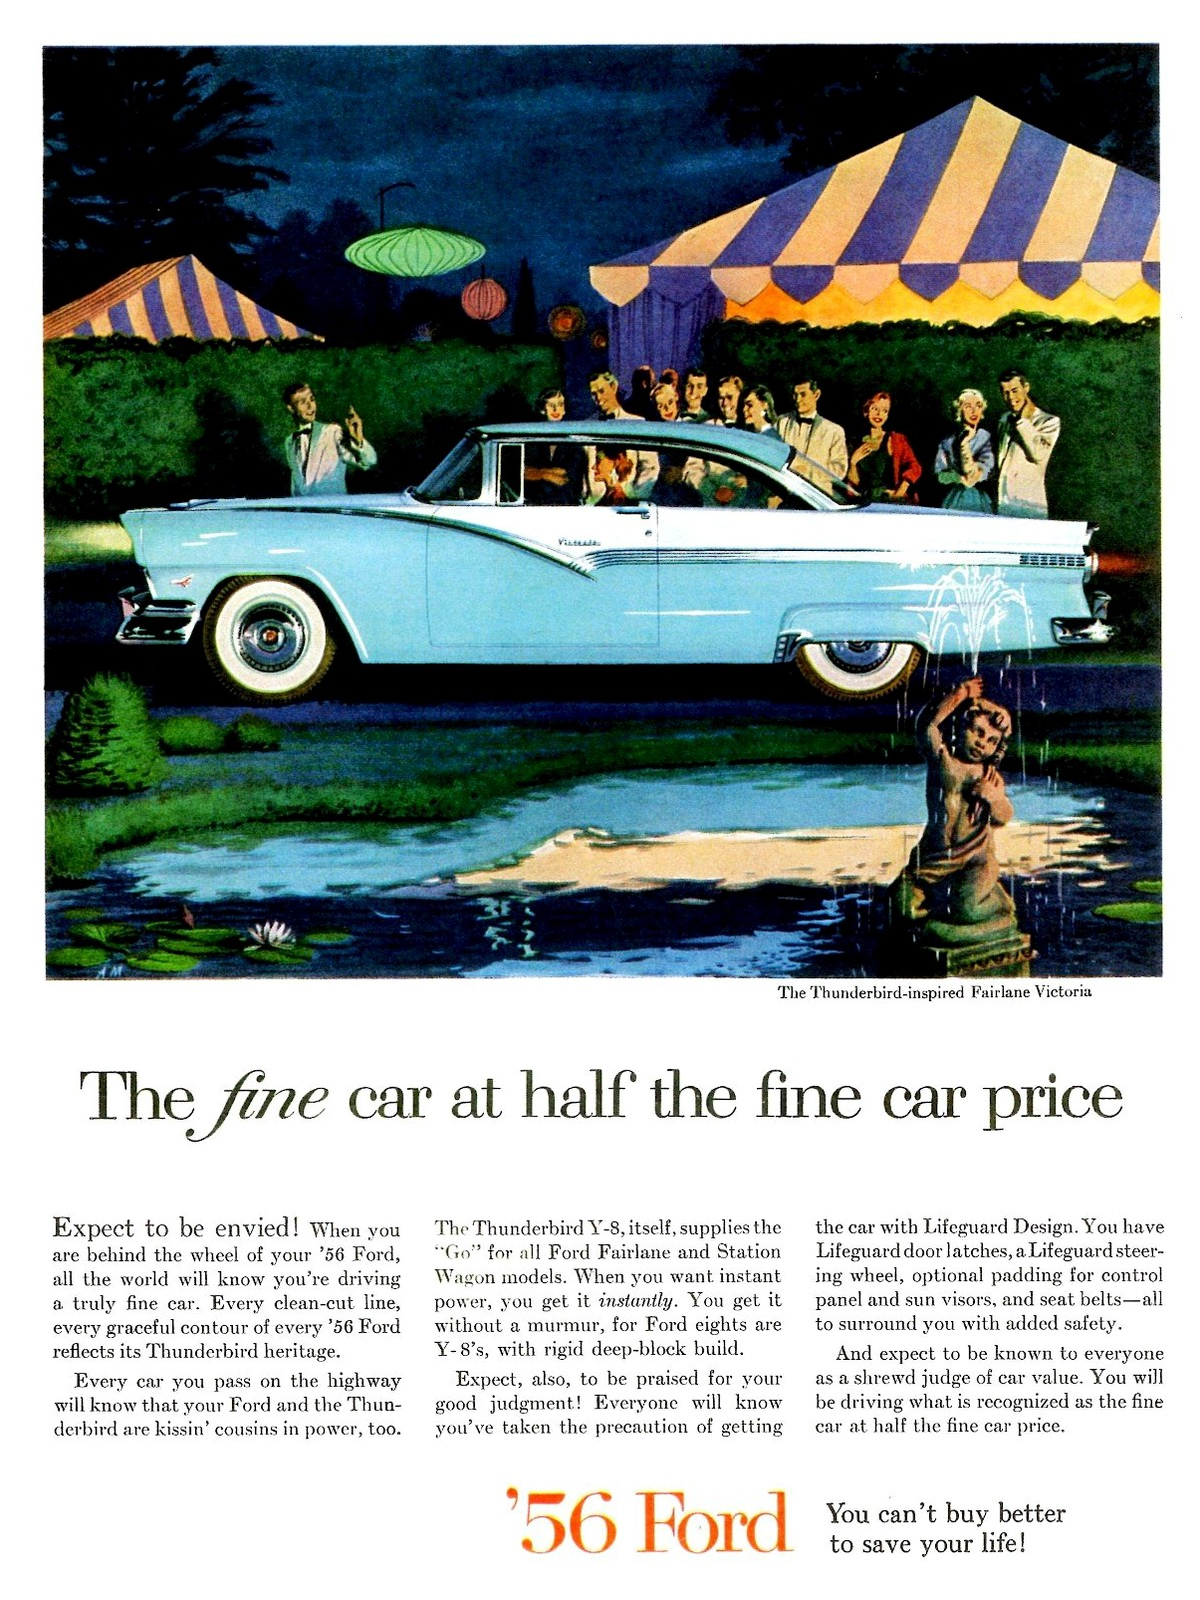 1956 Ford Fairlane - Vintage Cars Ads